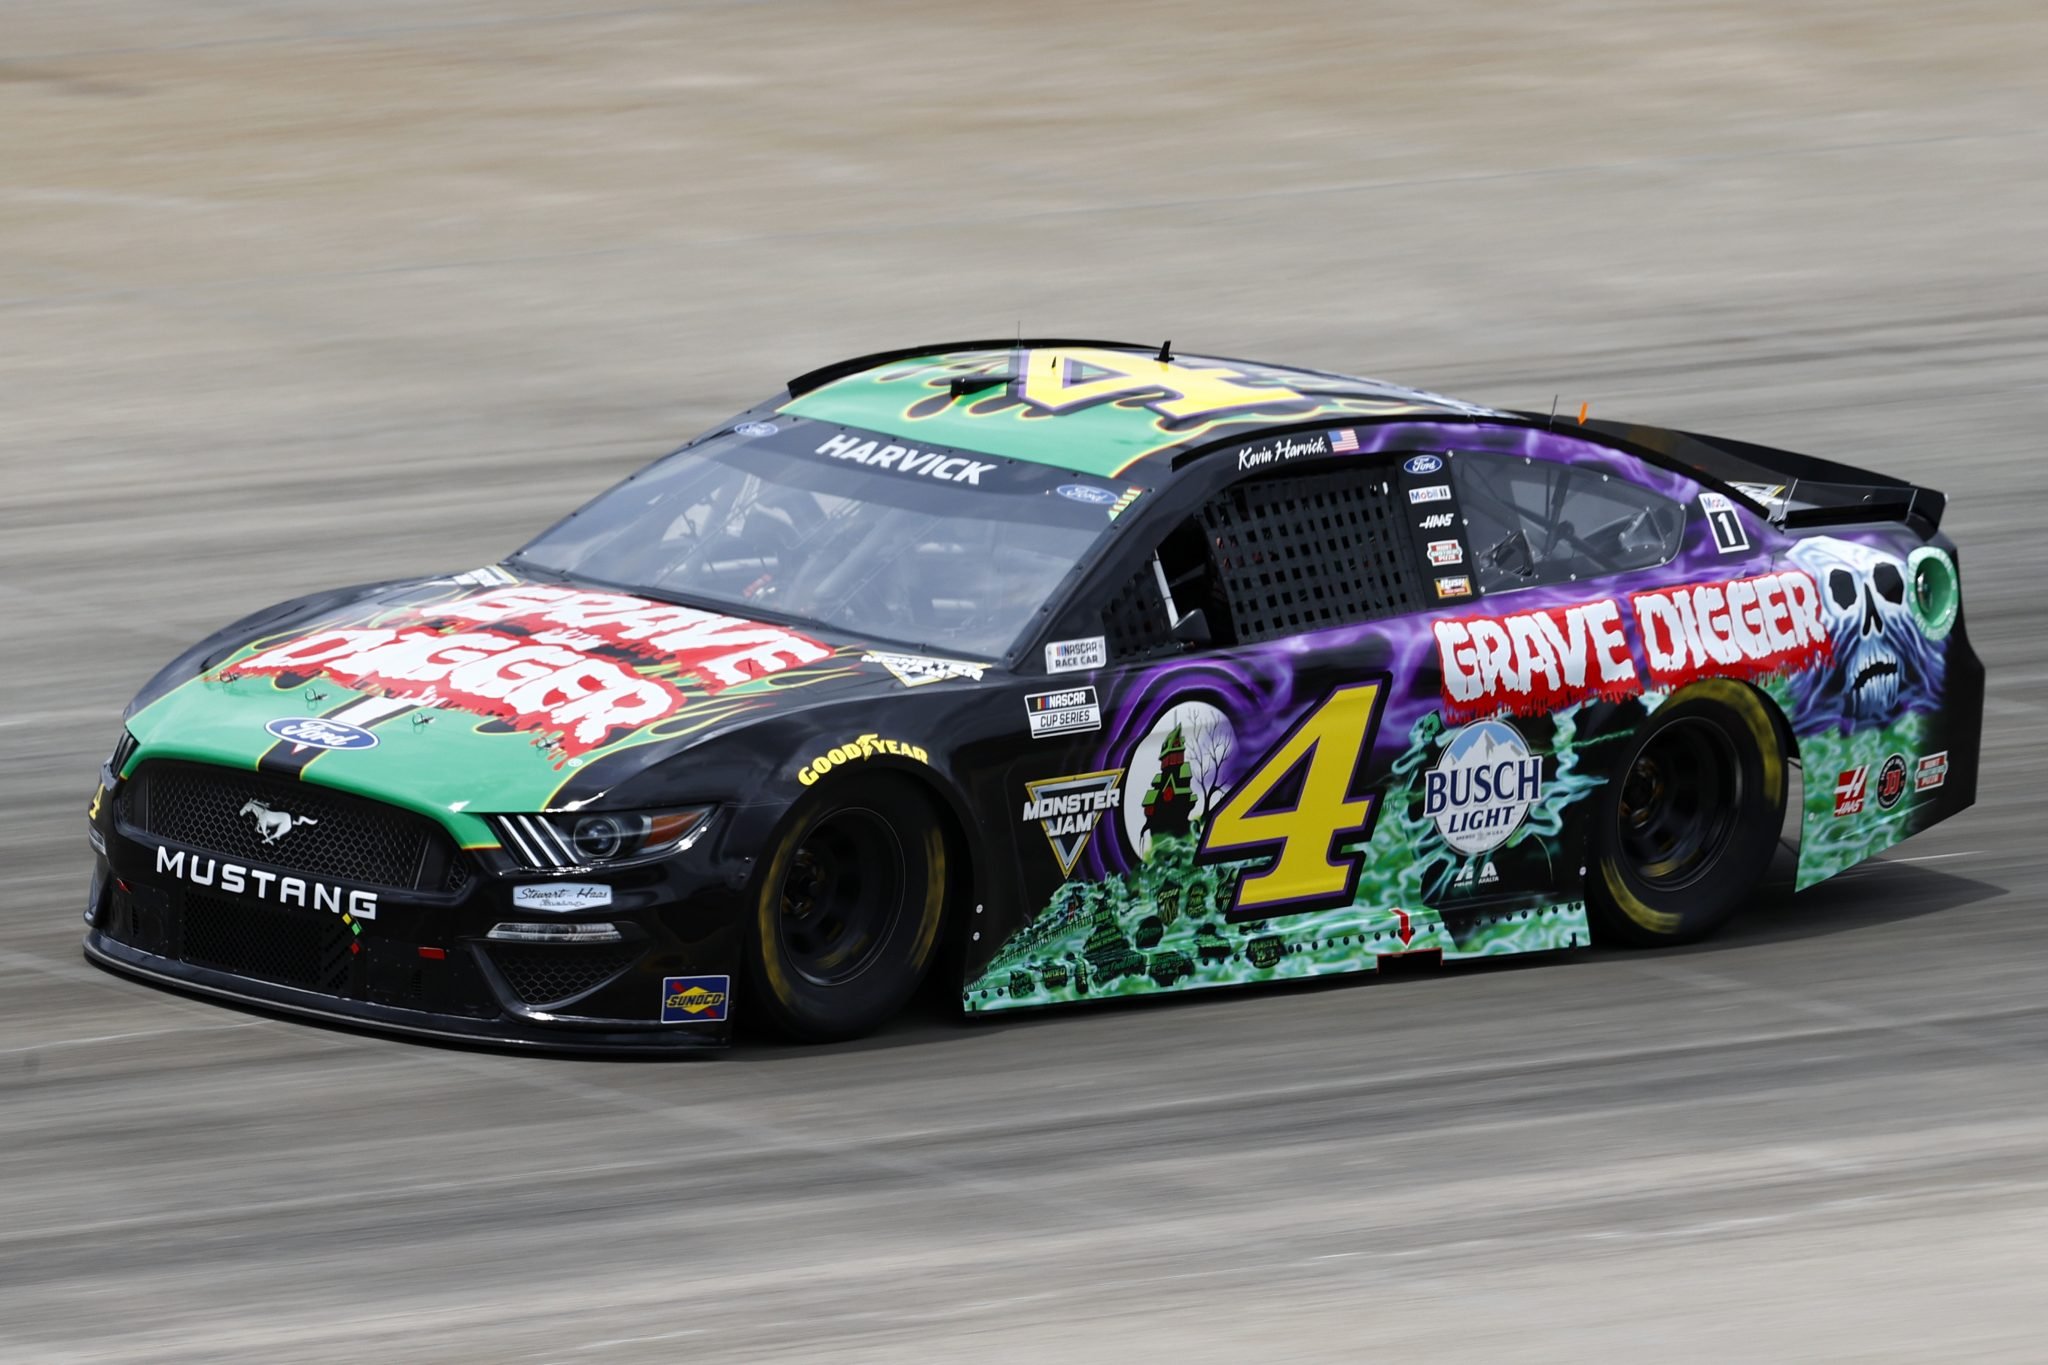 LEBANON, TENNESSEE - JUNE 19: Kevin Harvick, driver of the #4 Grave Digger Ford,  drives during practice for the NASCAR Cup Series Ally 400 at Nashville Superspeedway on June 19, 2021 in Lebanon, Tennessee. (Photo by Jared C. Tilton/Getty Images)   Getty Images